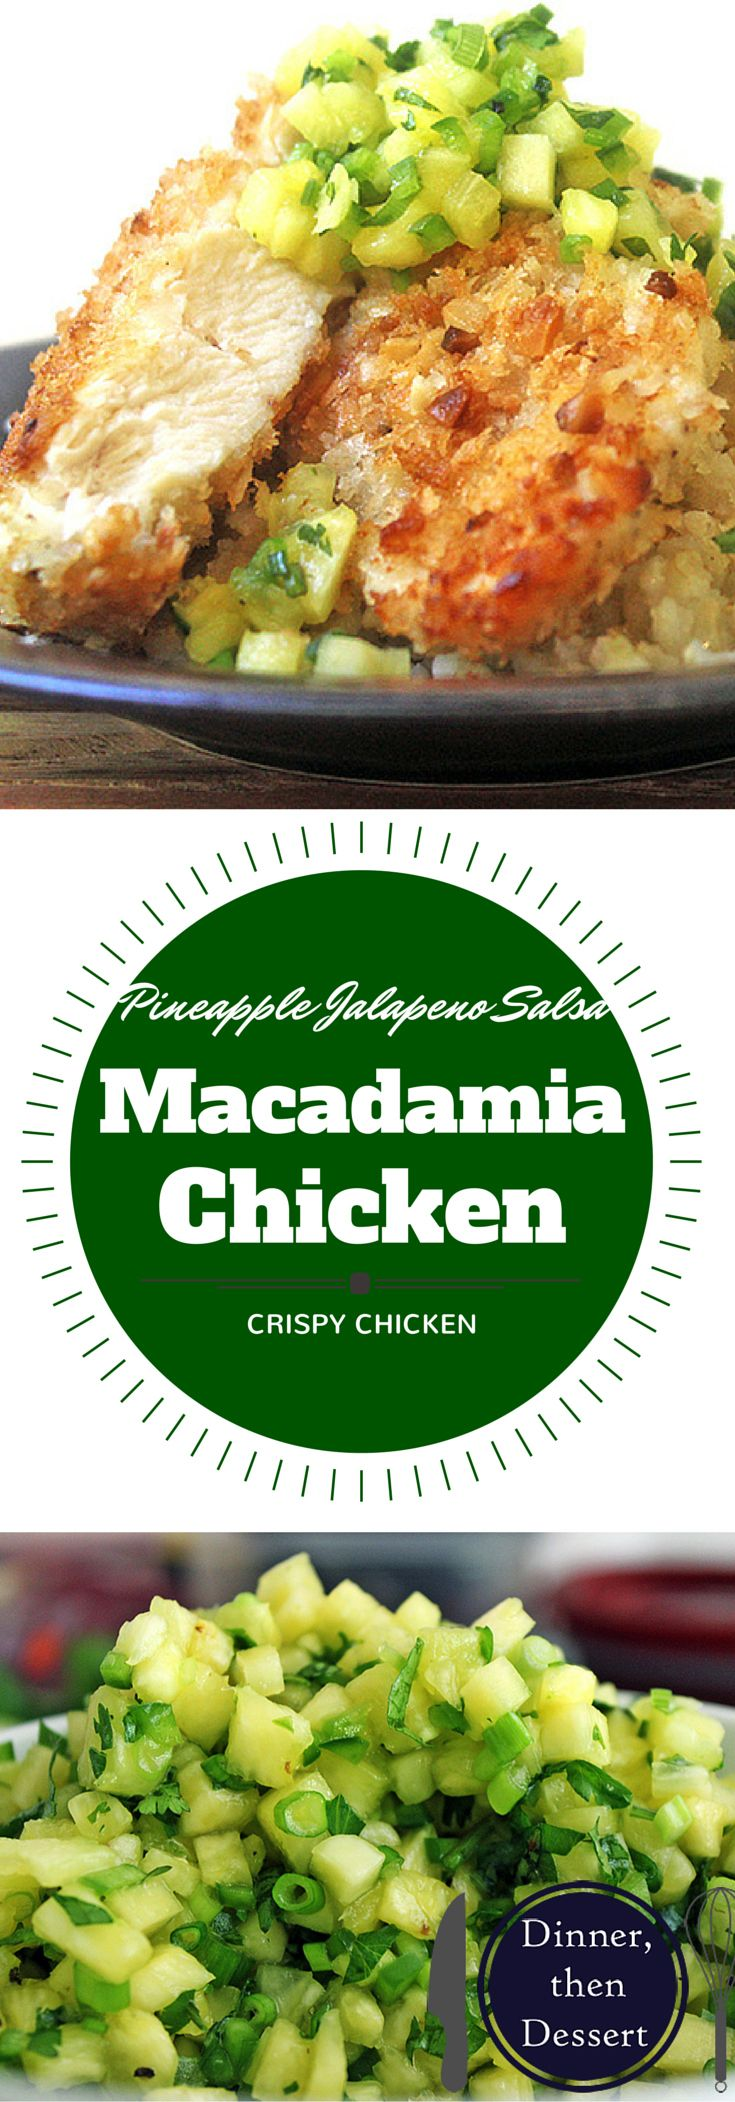 This chicken dish is crusted with macadamia nuts and topped with pineapple jalap…